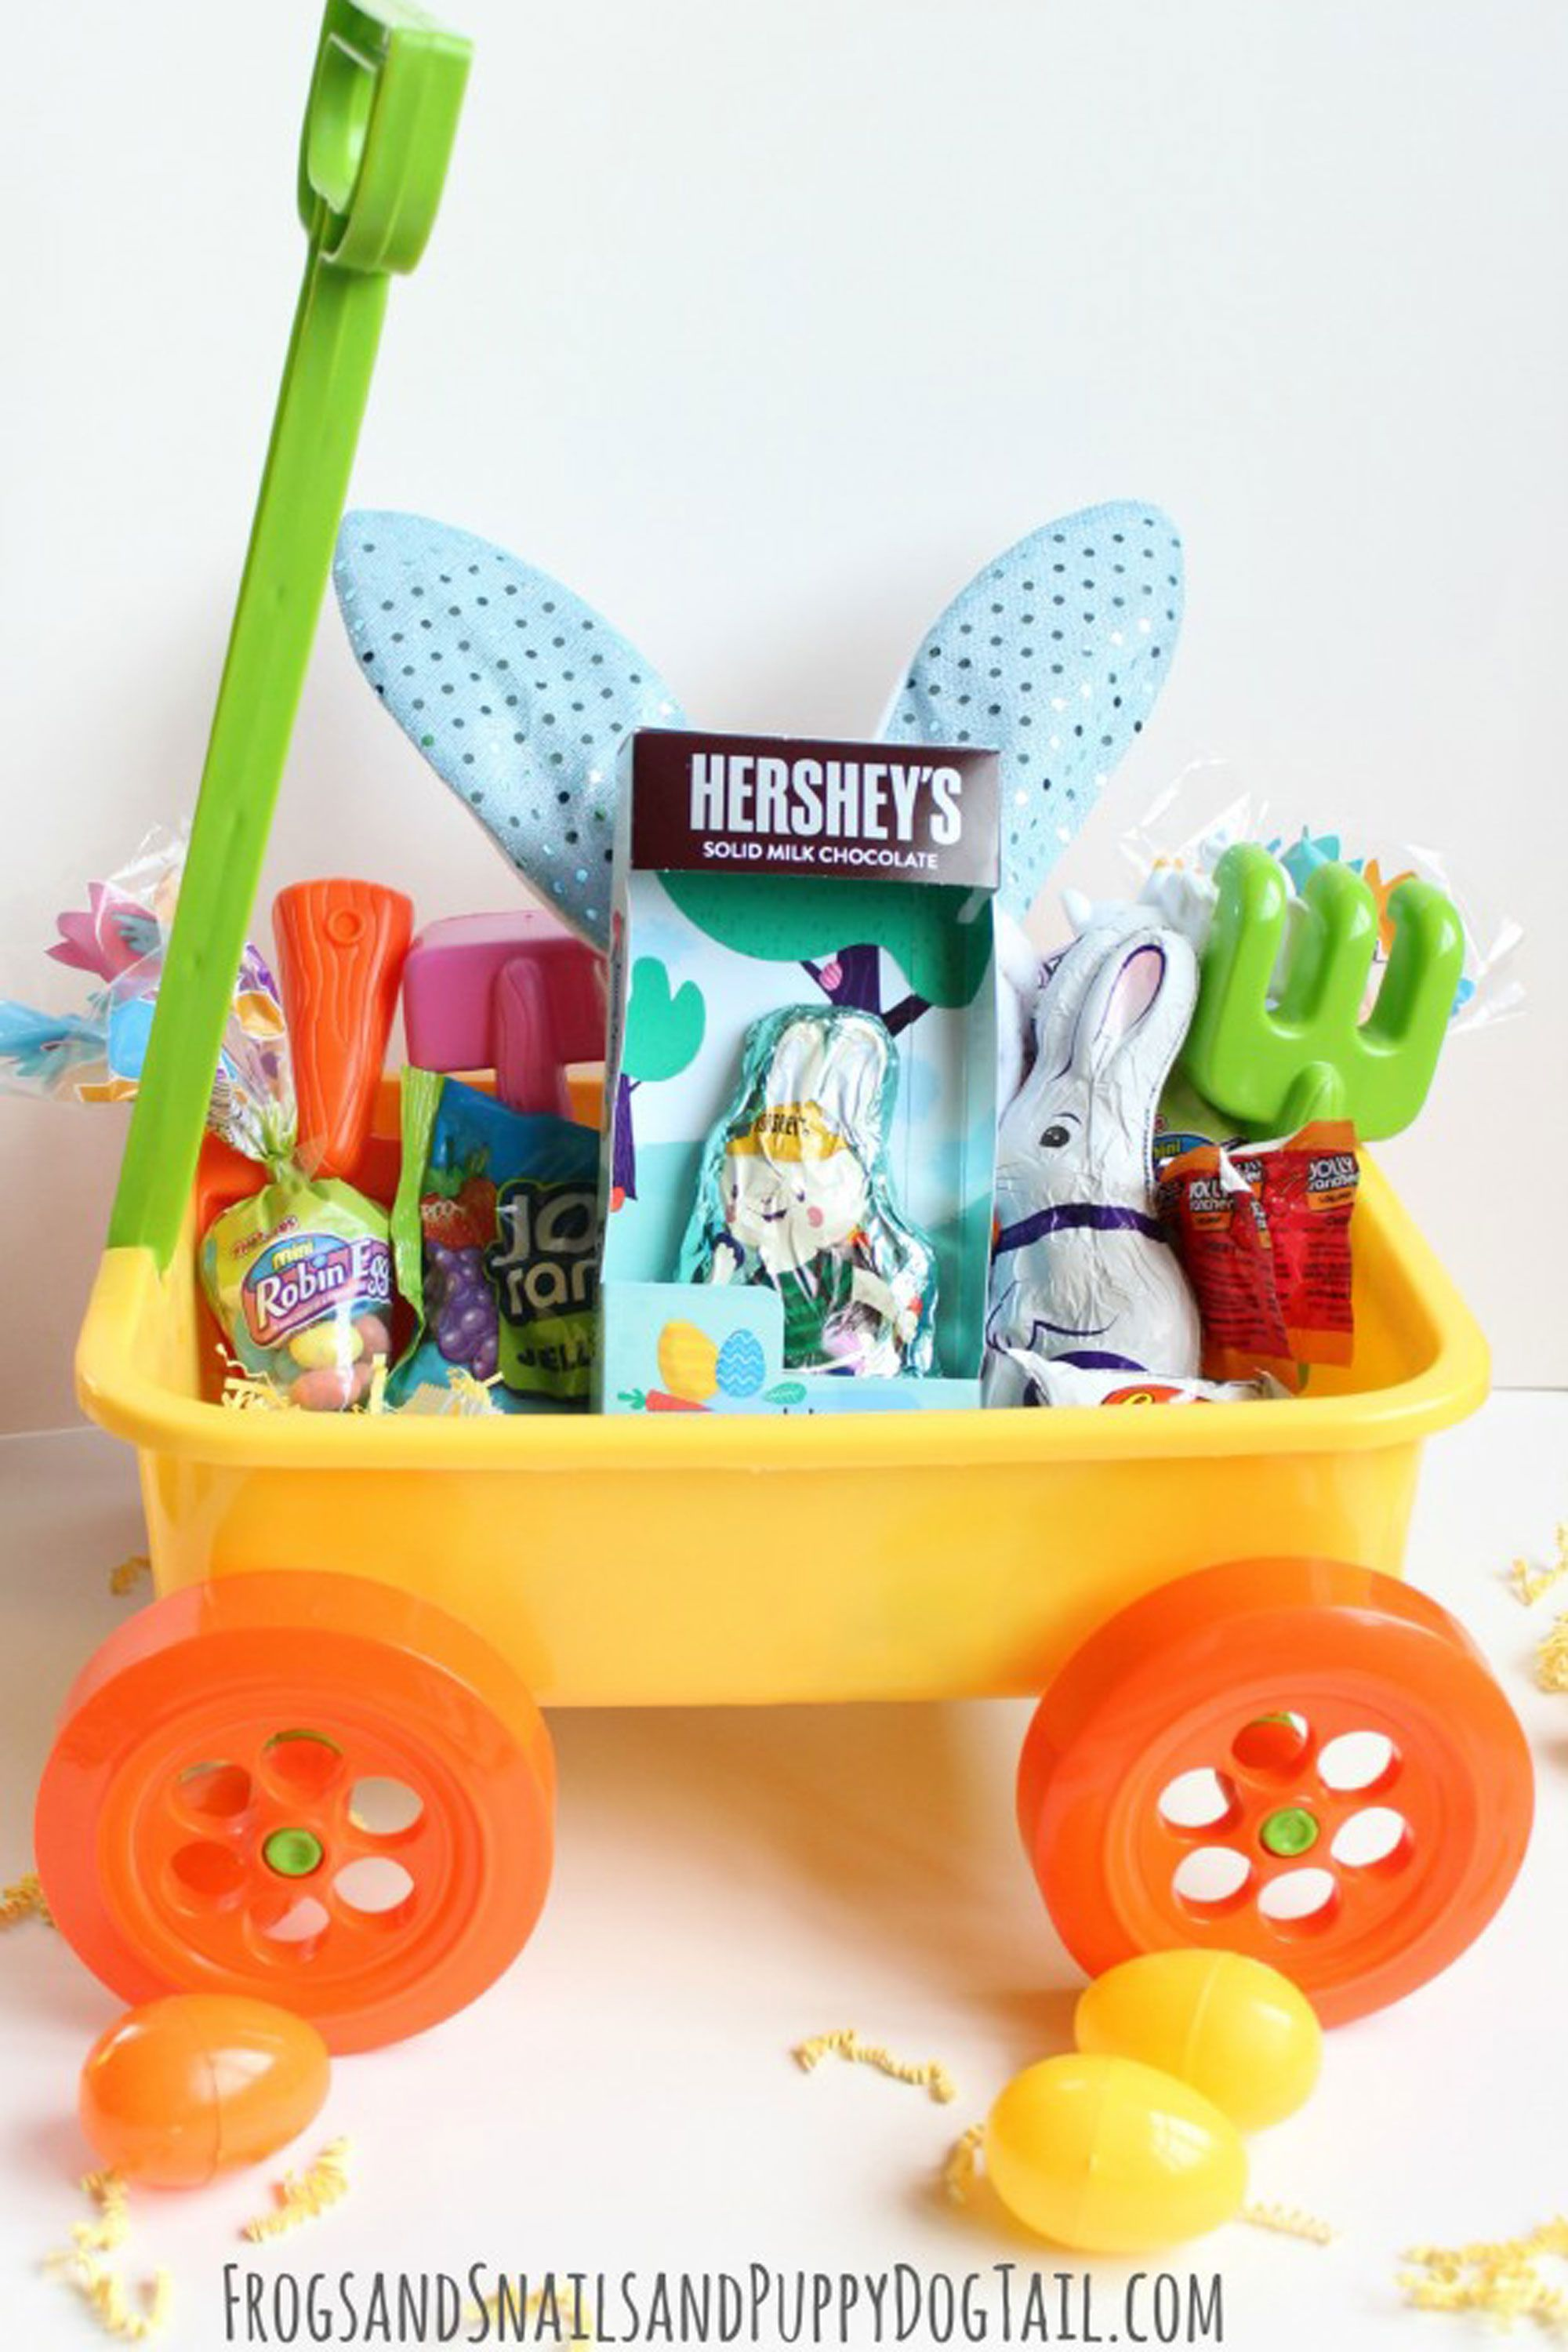 Awesome 16 Easter Basket Ideas For Kids   Best Easter Gifts For Babies, Toddlers,  And Teenagers